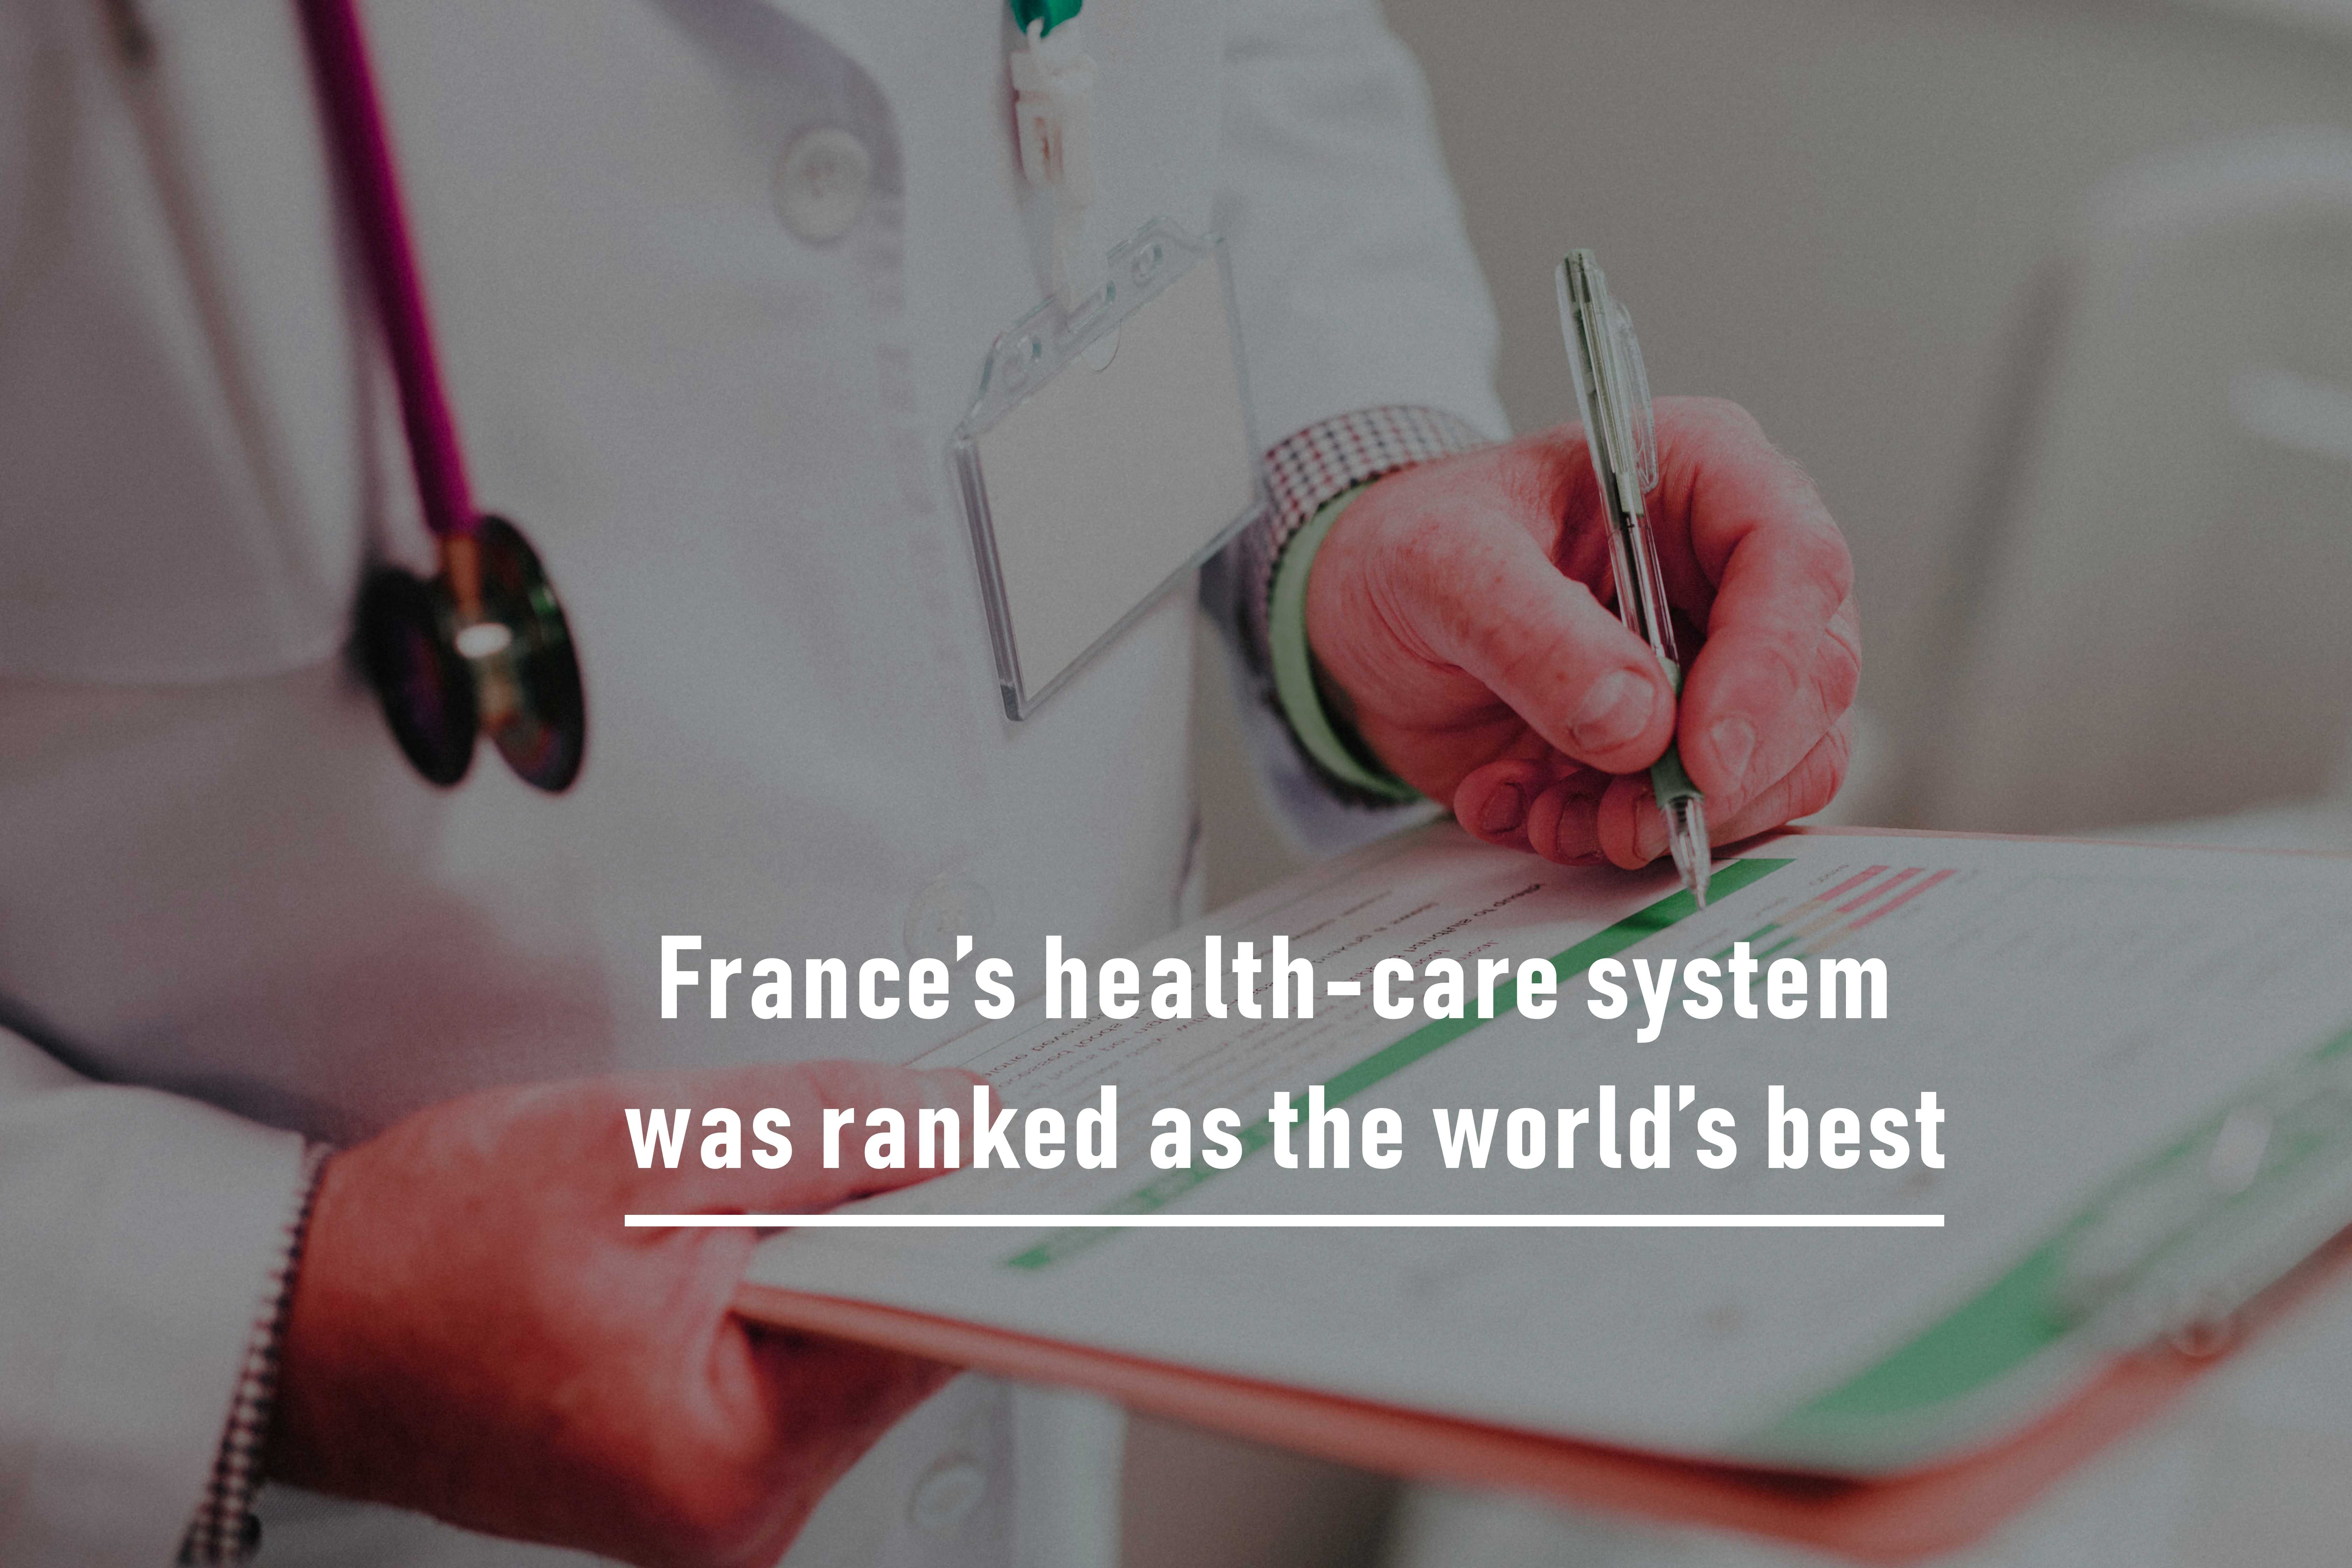 World's best ranked Health-care System of France vs. the US Health-care System